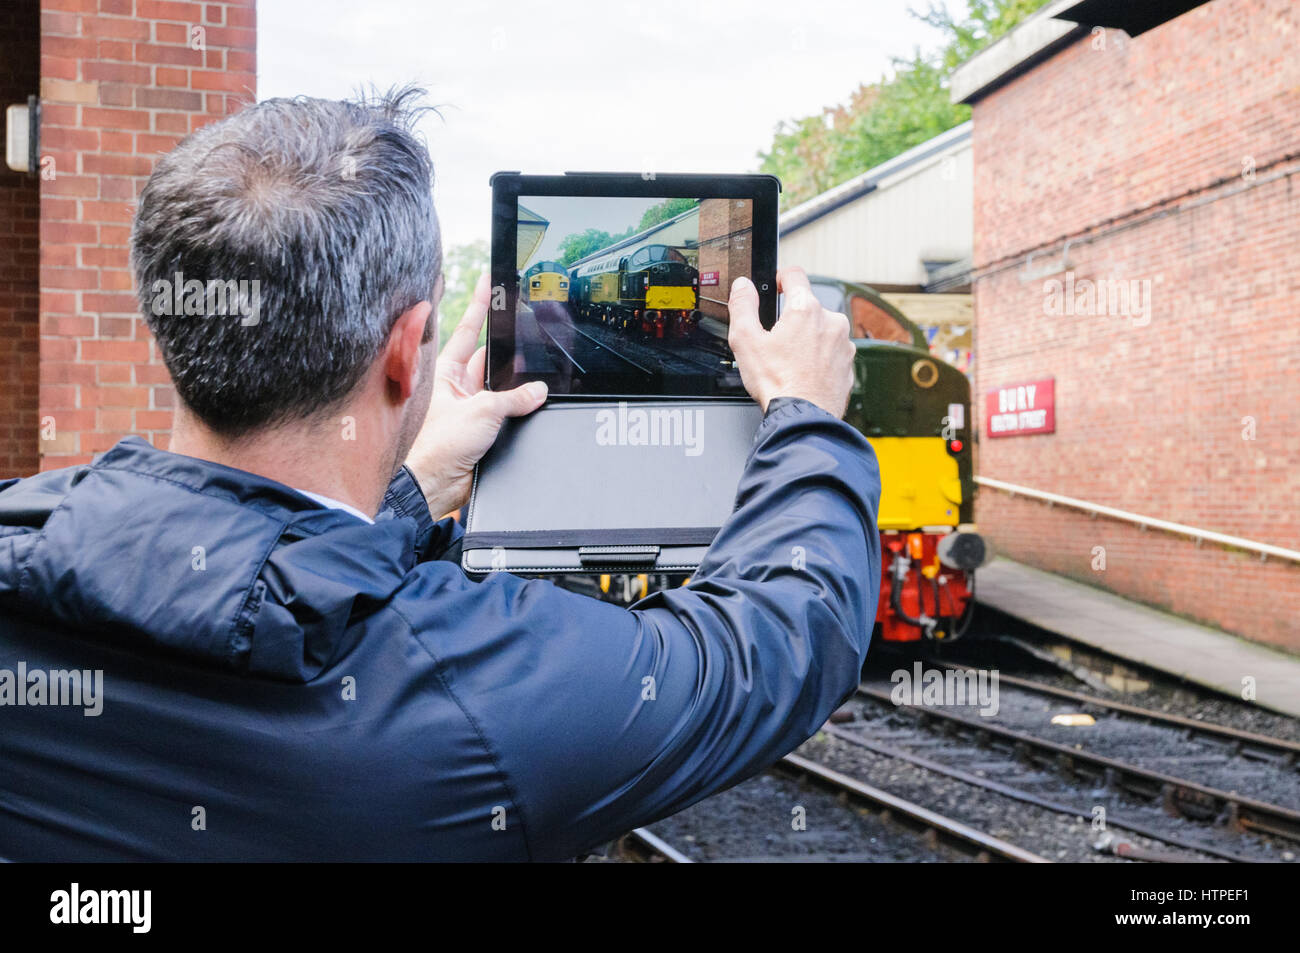 A rail enthusiast taking a picture of class 37 and class 40 locos at Bury on the East Lancs Railway - Stock Image